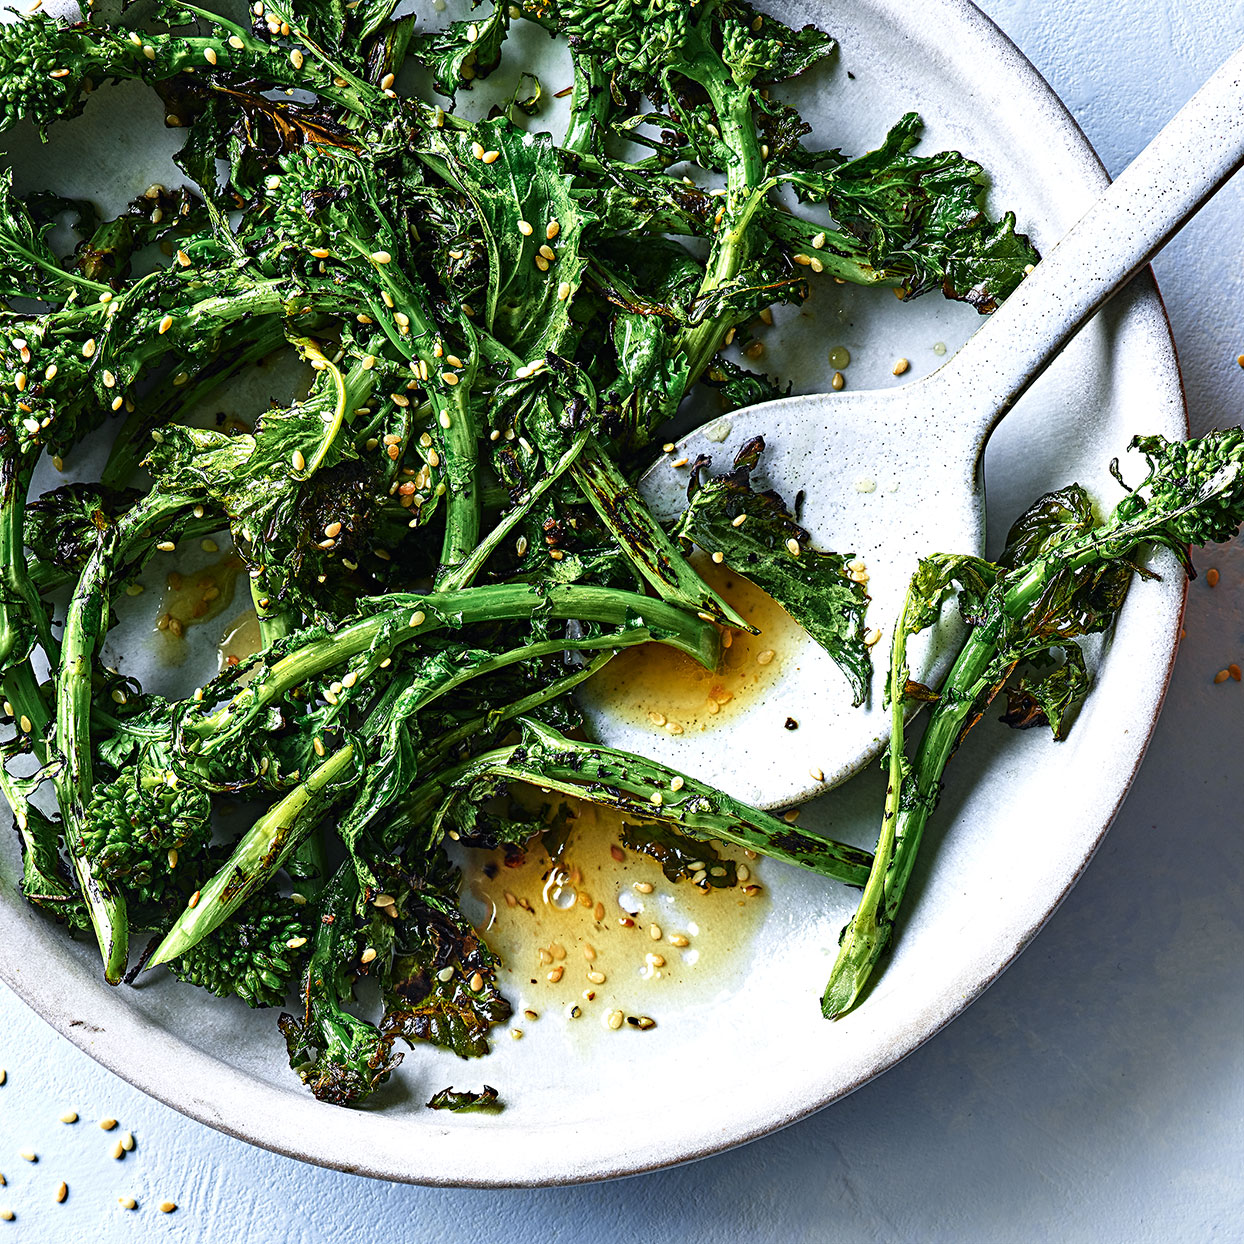 You can go without using oil if you are cooking broccoli rabe in the dry heat of a skillet. It adds a nice sear to the oranges as well. Seasoned with toasty sesame, this healthy vegetable side dish is an easy flavor upgrade. Source: EatingWell Magazine, December 2019